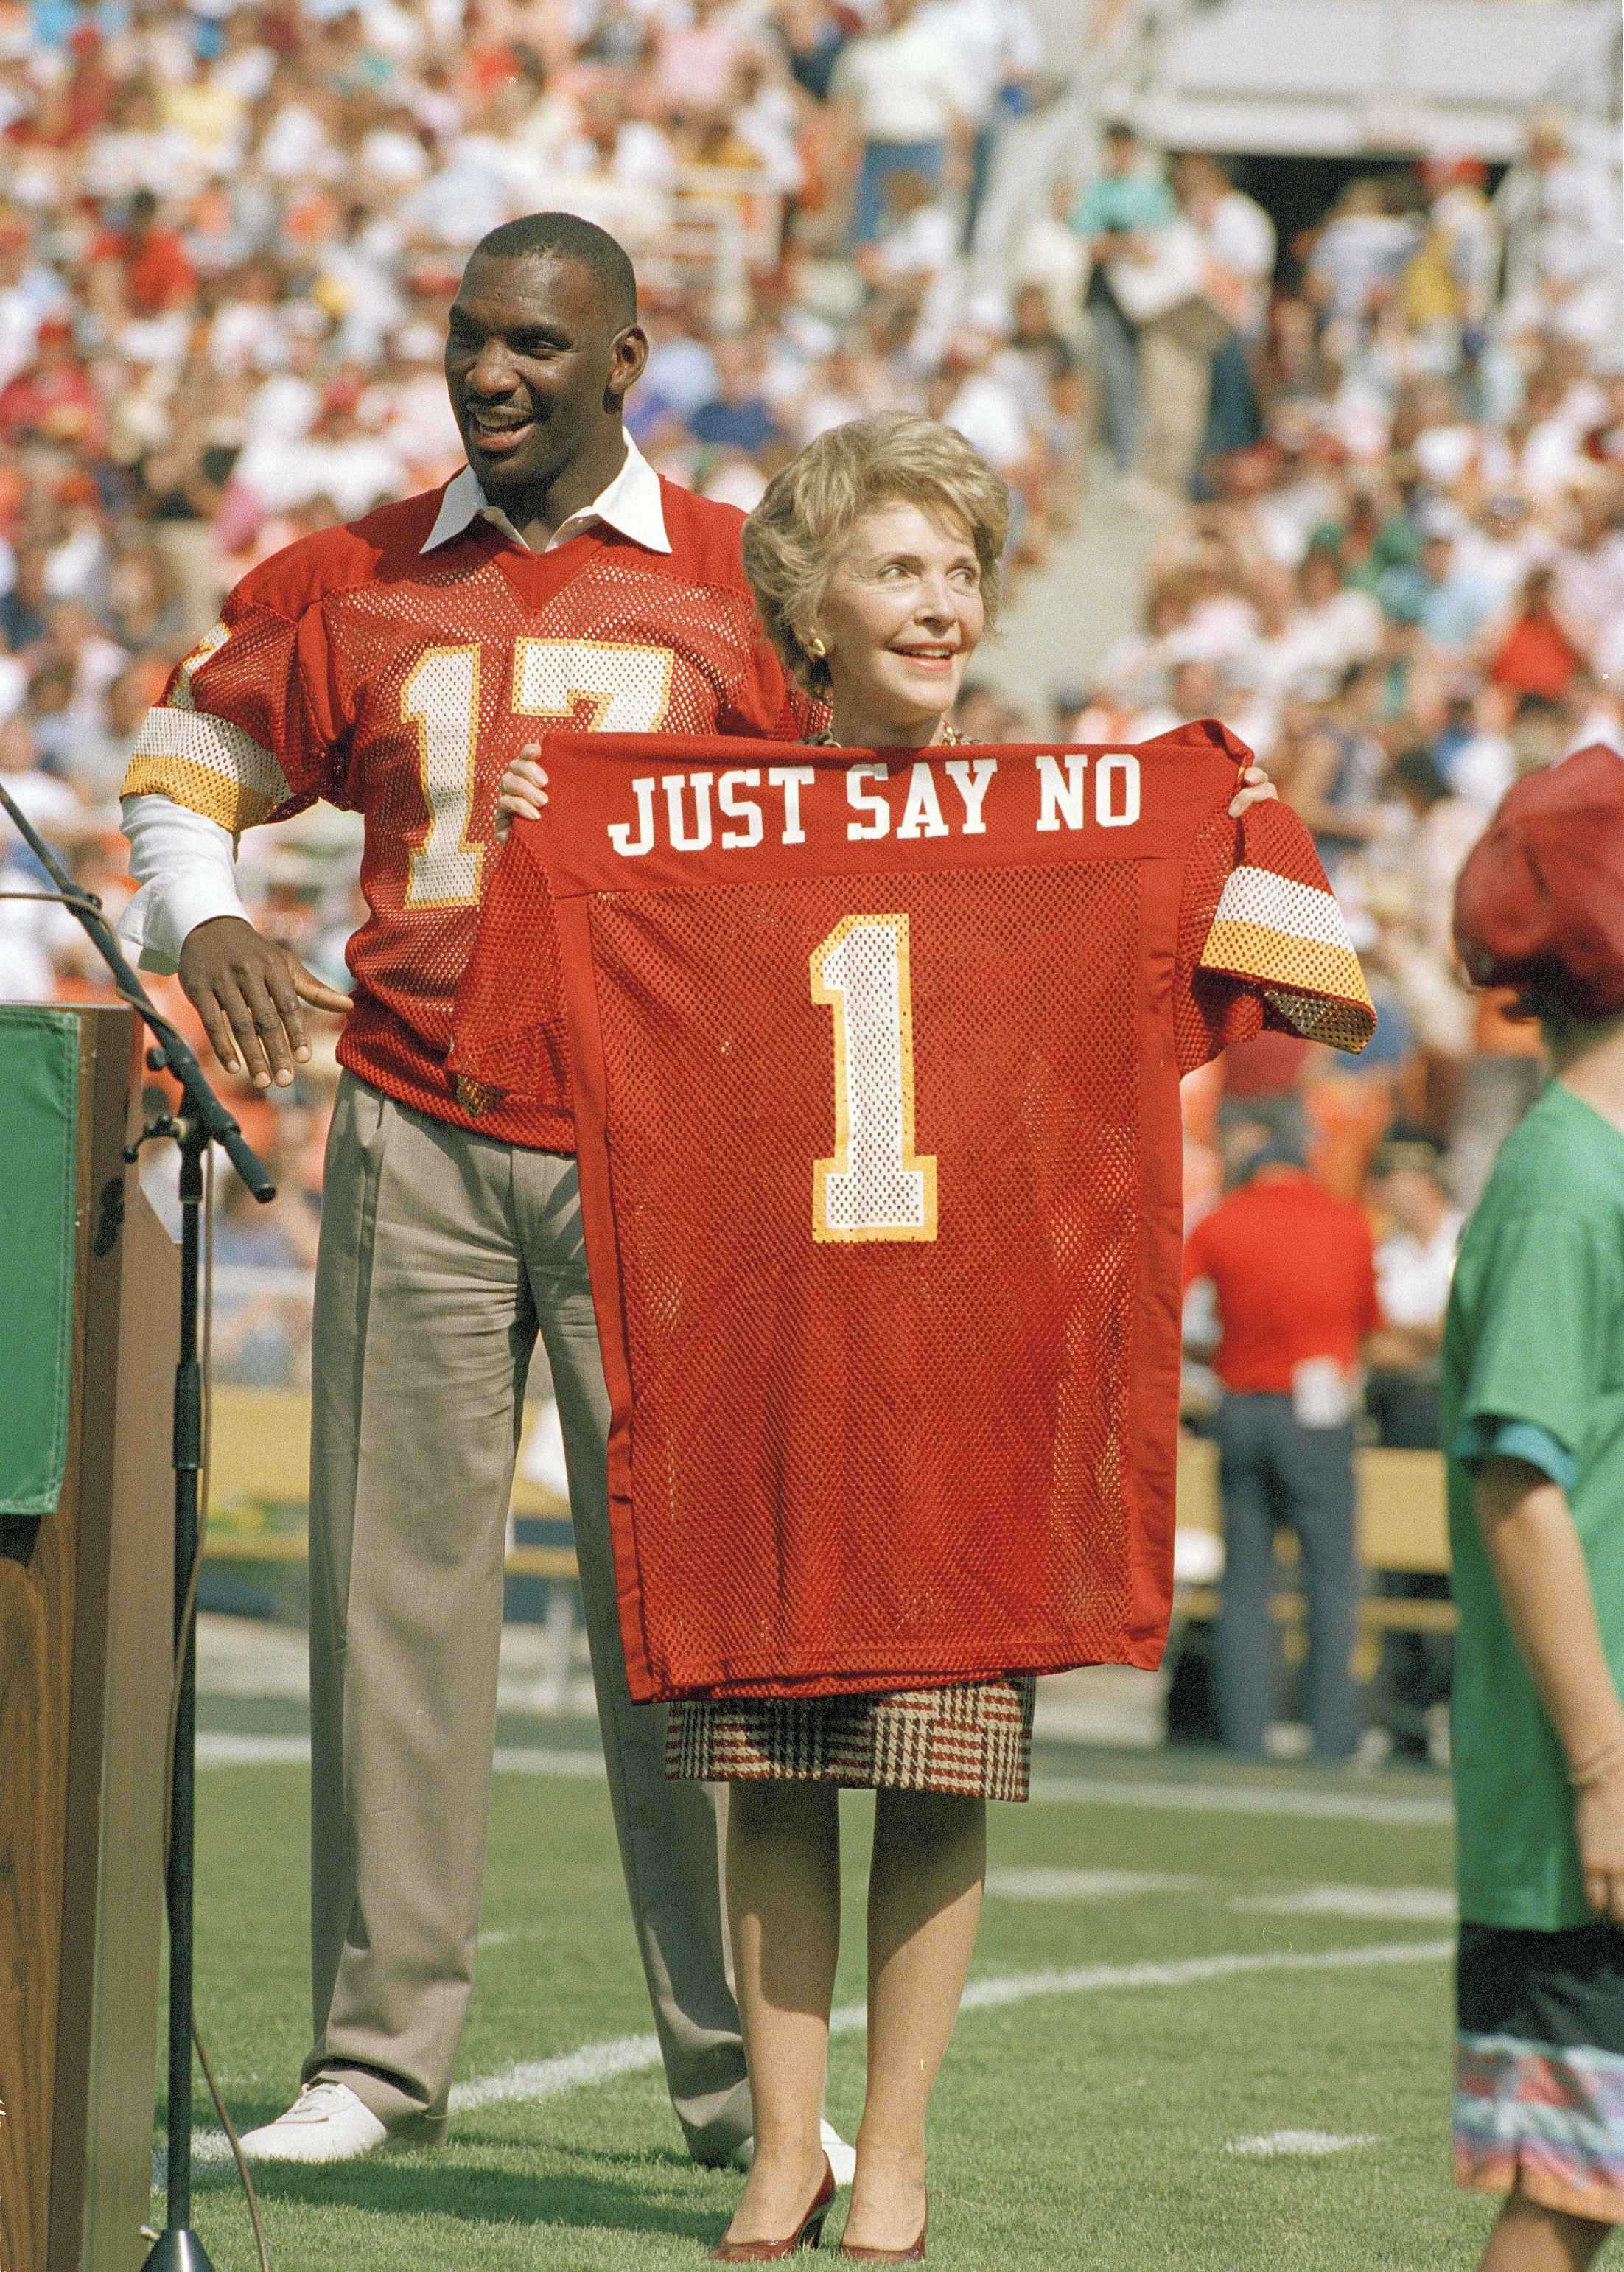 Why You Should Just Say No To Hard Drugs Herman Vincent Womenamp039s Briefcase Merah Washington Redskins Injured Starting Quarterback Doug Wiliams Stands Behind First Lady Nancy Reagan Holds A Jersey Presented Her By Williams Prior The